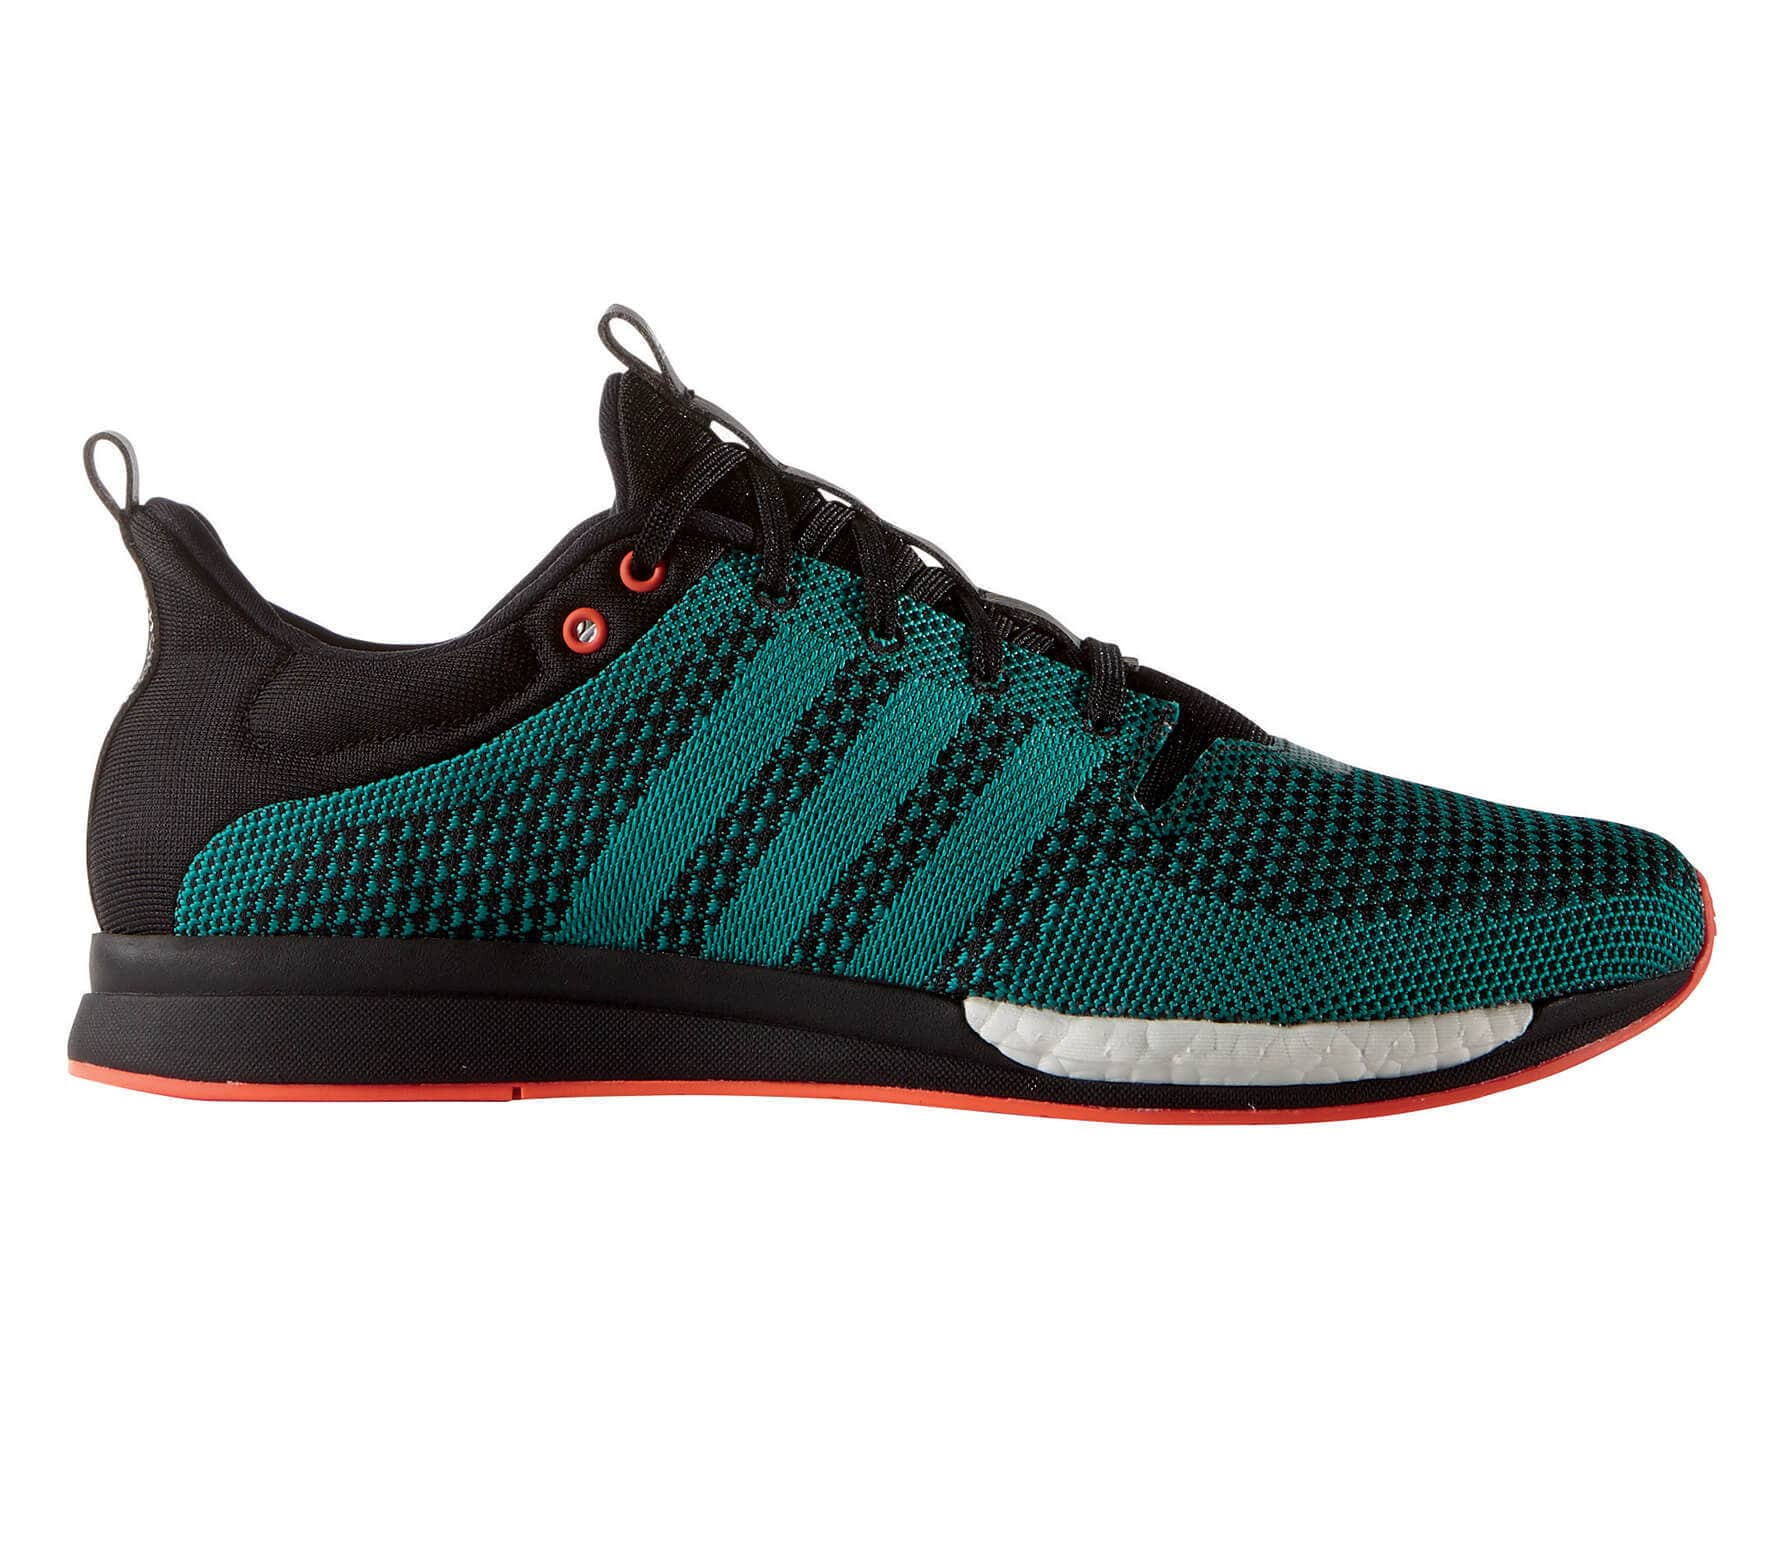 wholesale dealer a7497 18fa0 Adizero Feather Boost mens running shoes (dunkeltürkisblack)